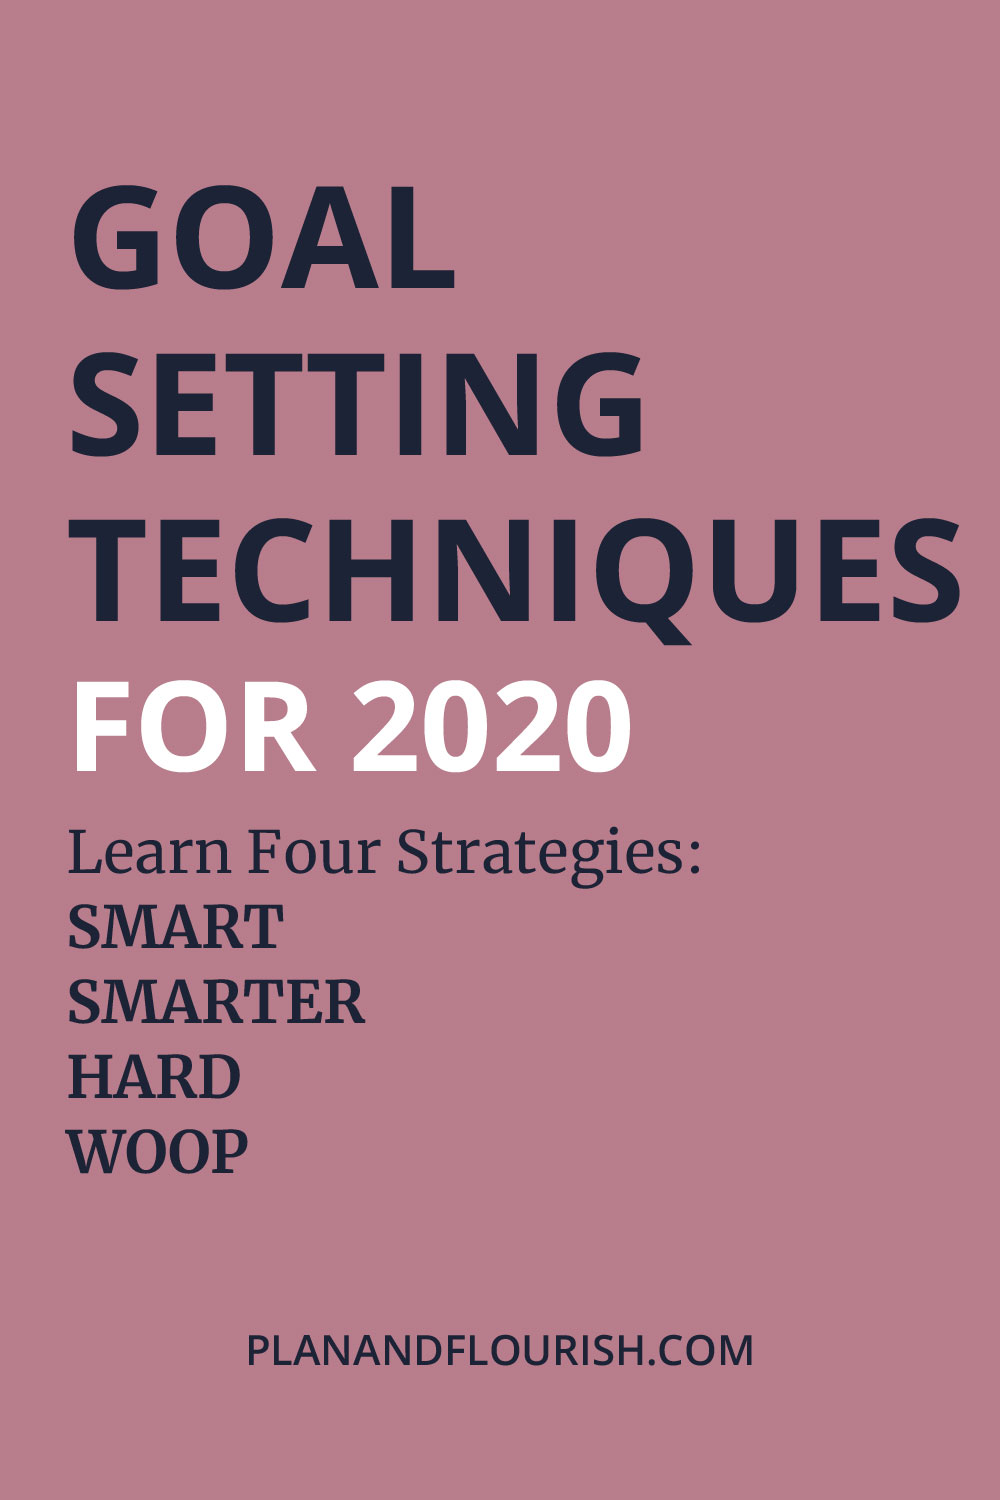 Goal Setting Techniques For 2020